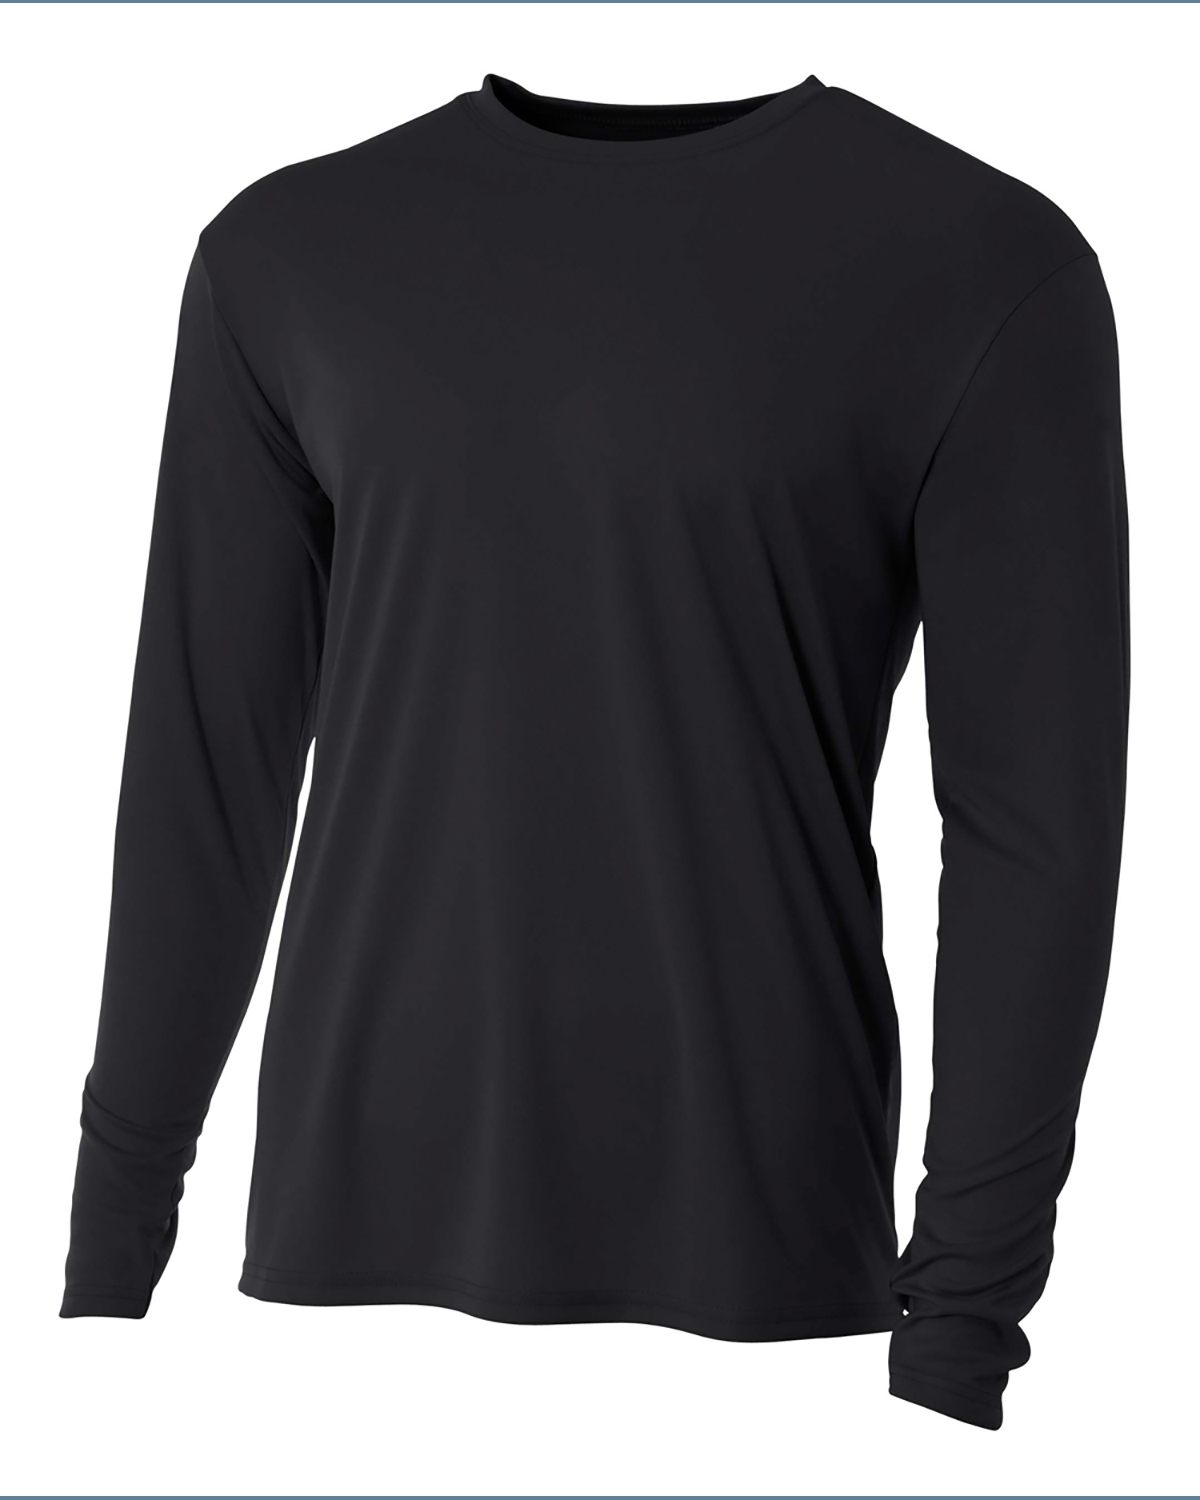 A4 NB3165 - Youth Cooling Performance Long Sleeve Crew